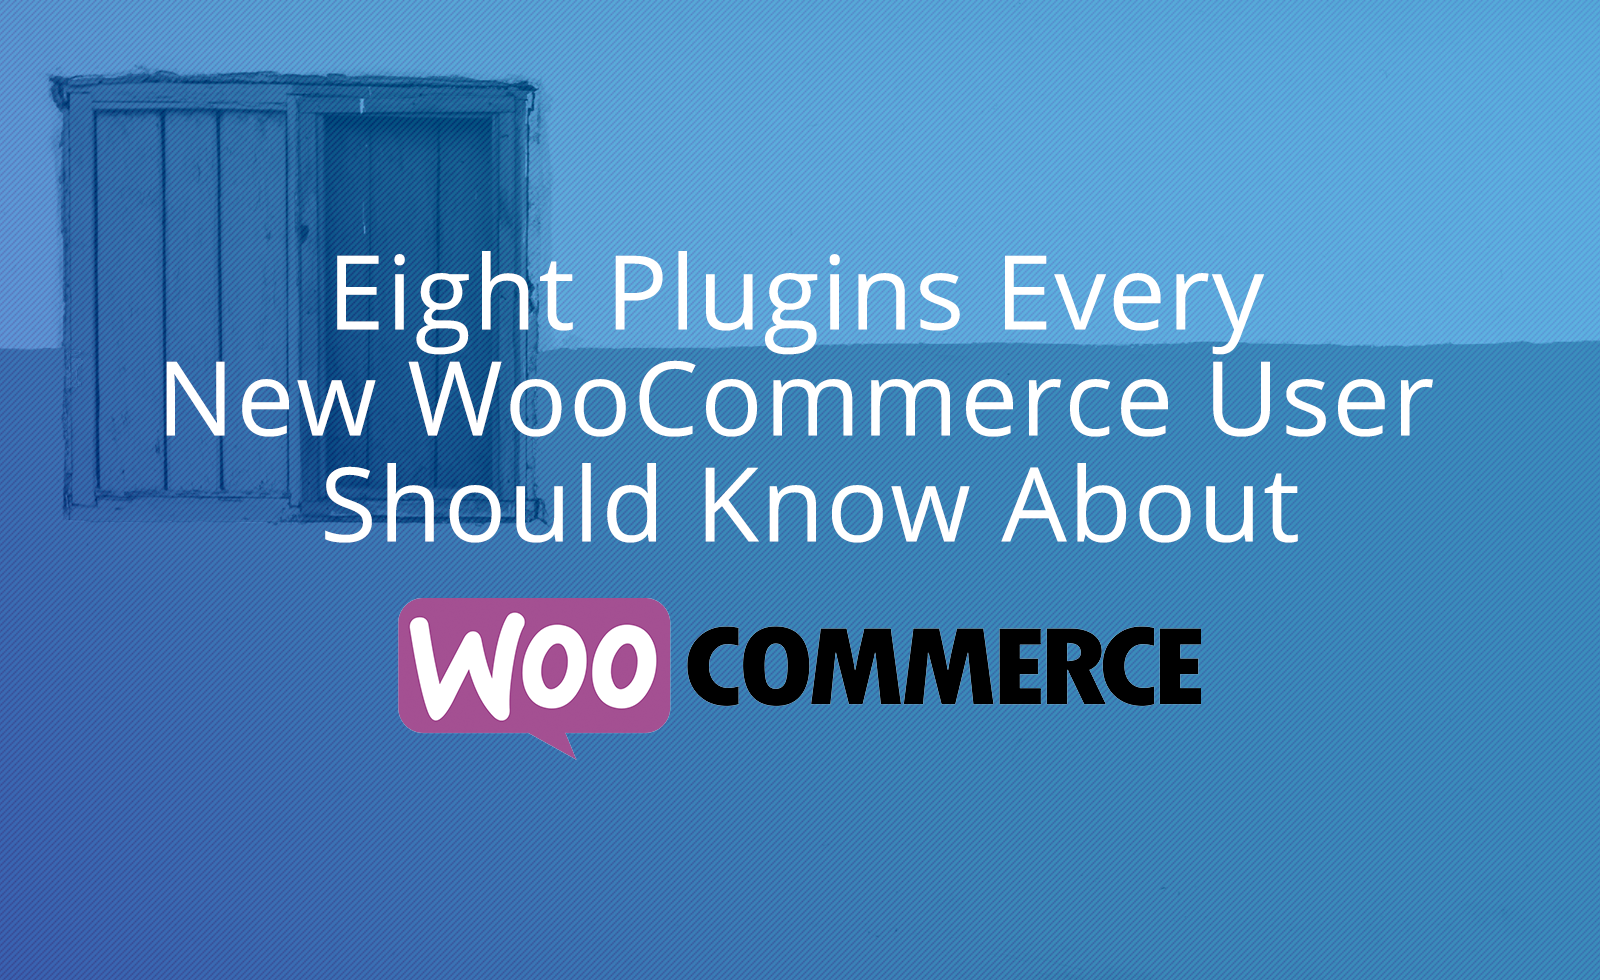 Eight Plugins Every New WooCommerce User Should Know About